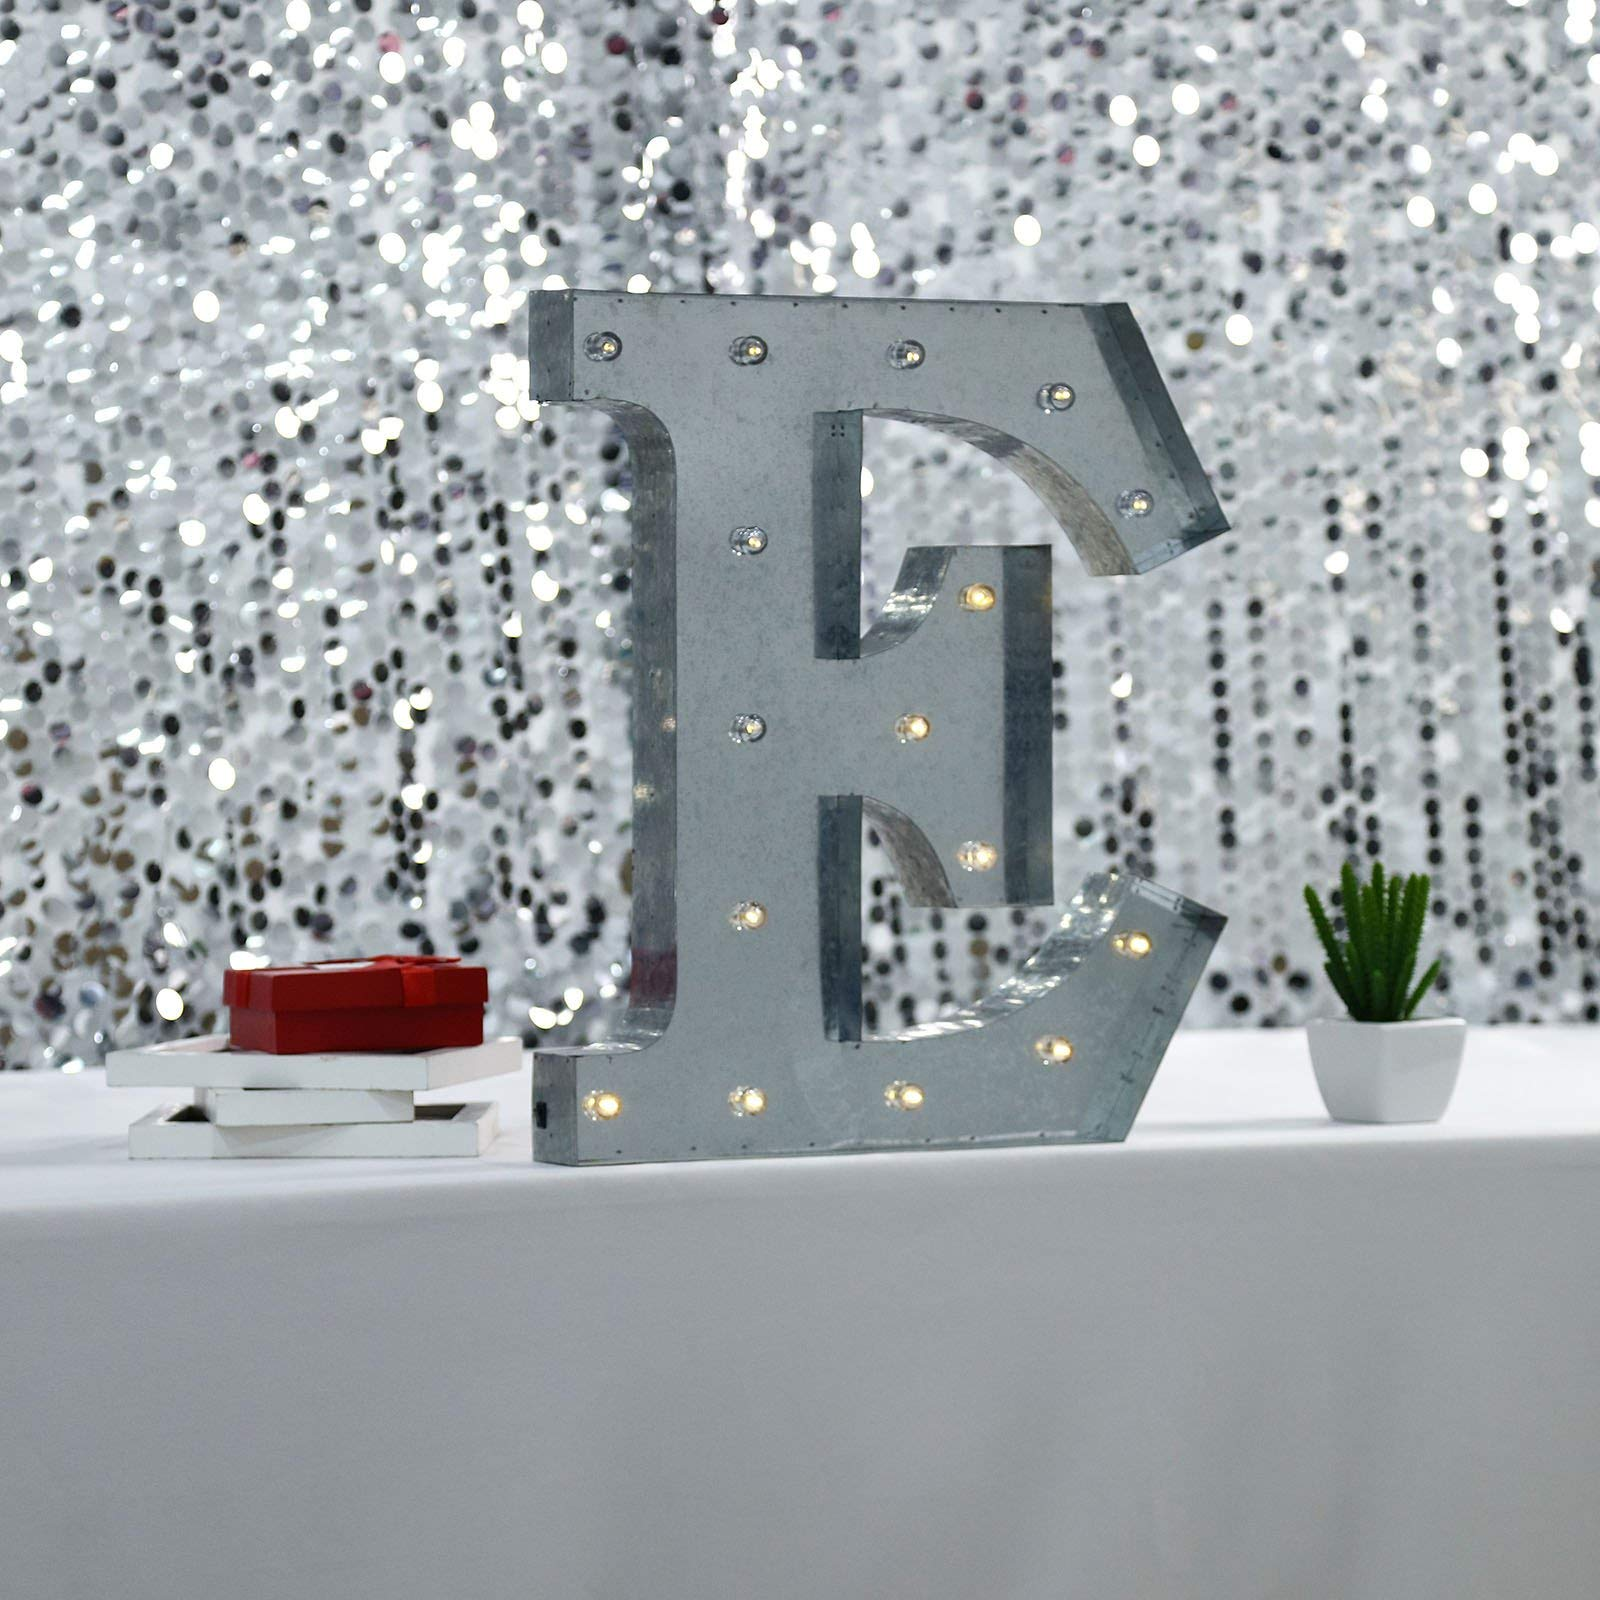 Tableclothsfactory 2 FT | Vintage Metal Marquee Letter Lights Cordless with 16 Warm White LED - E by Tableclothsfactory